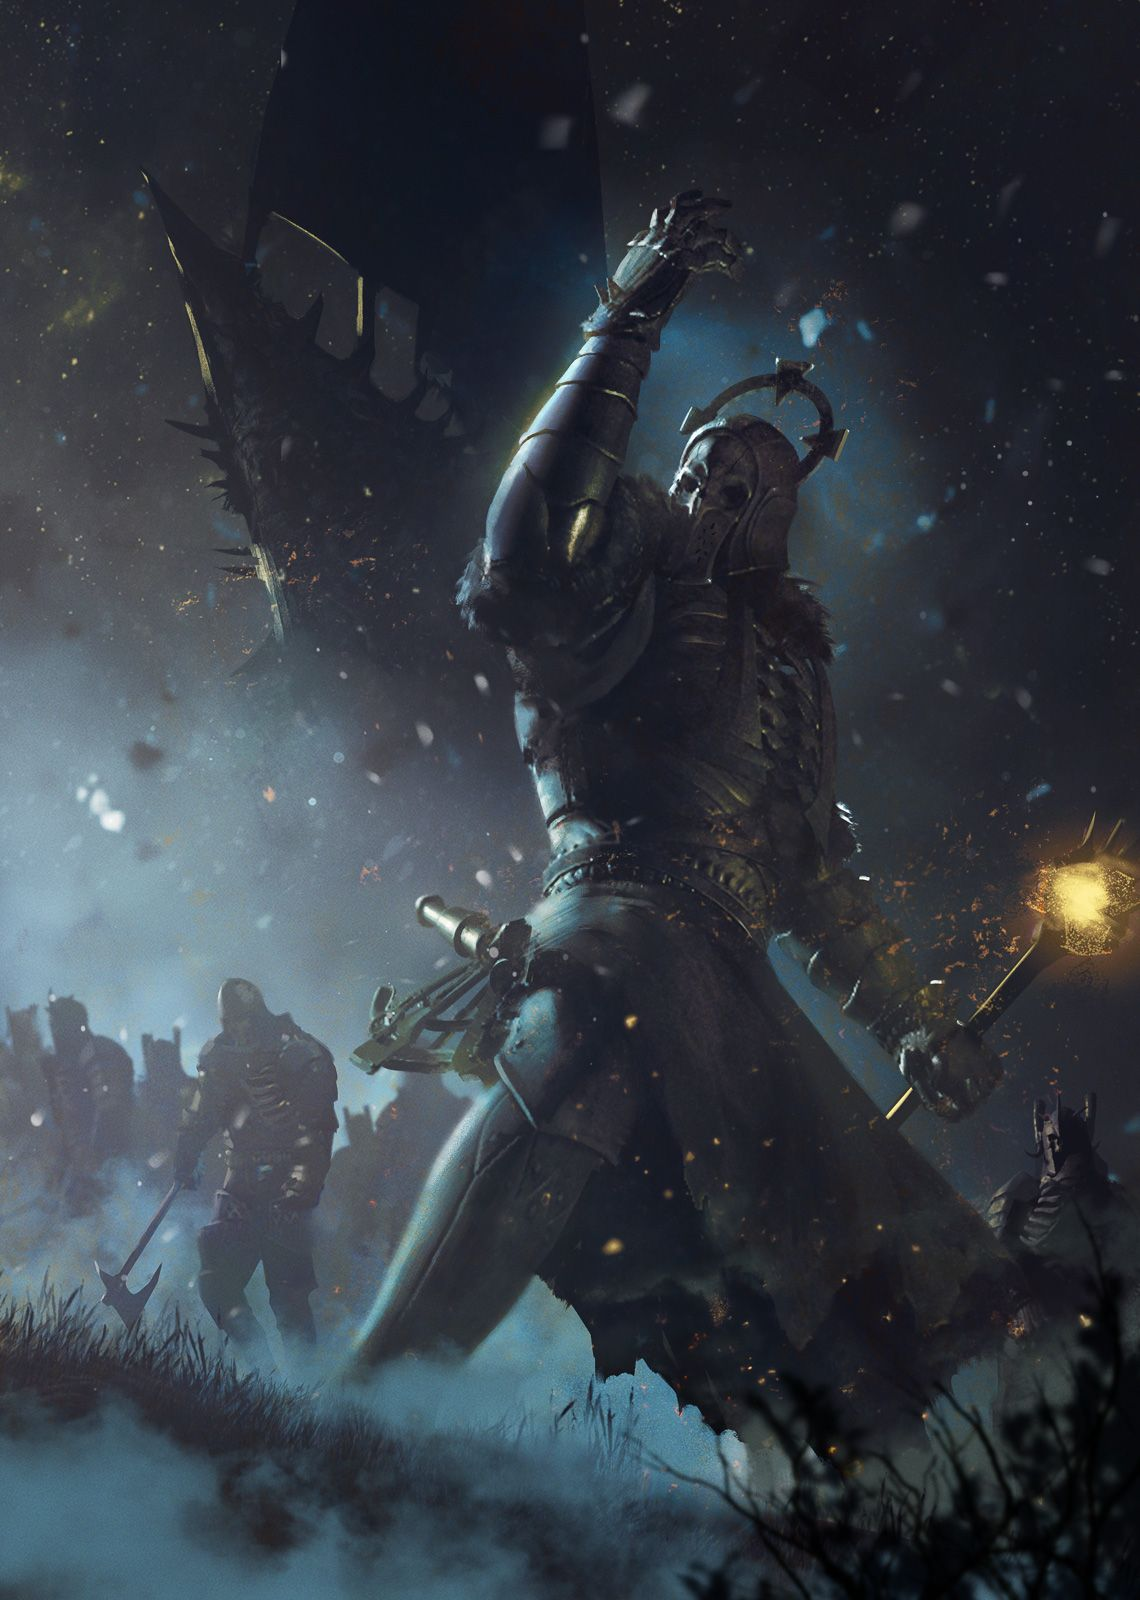 Pin On The Witcher Iii Wild Hunt Fine Art Prints The witcher 3 wild hunt art